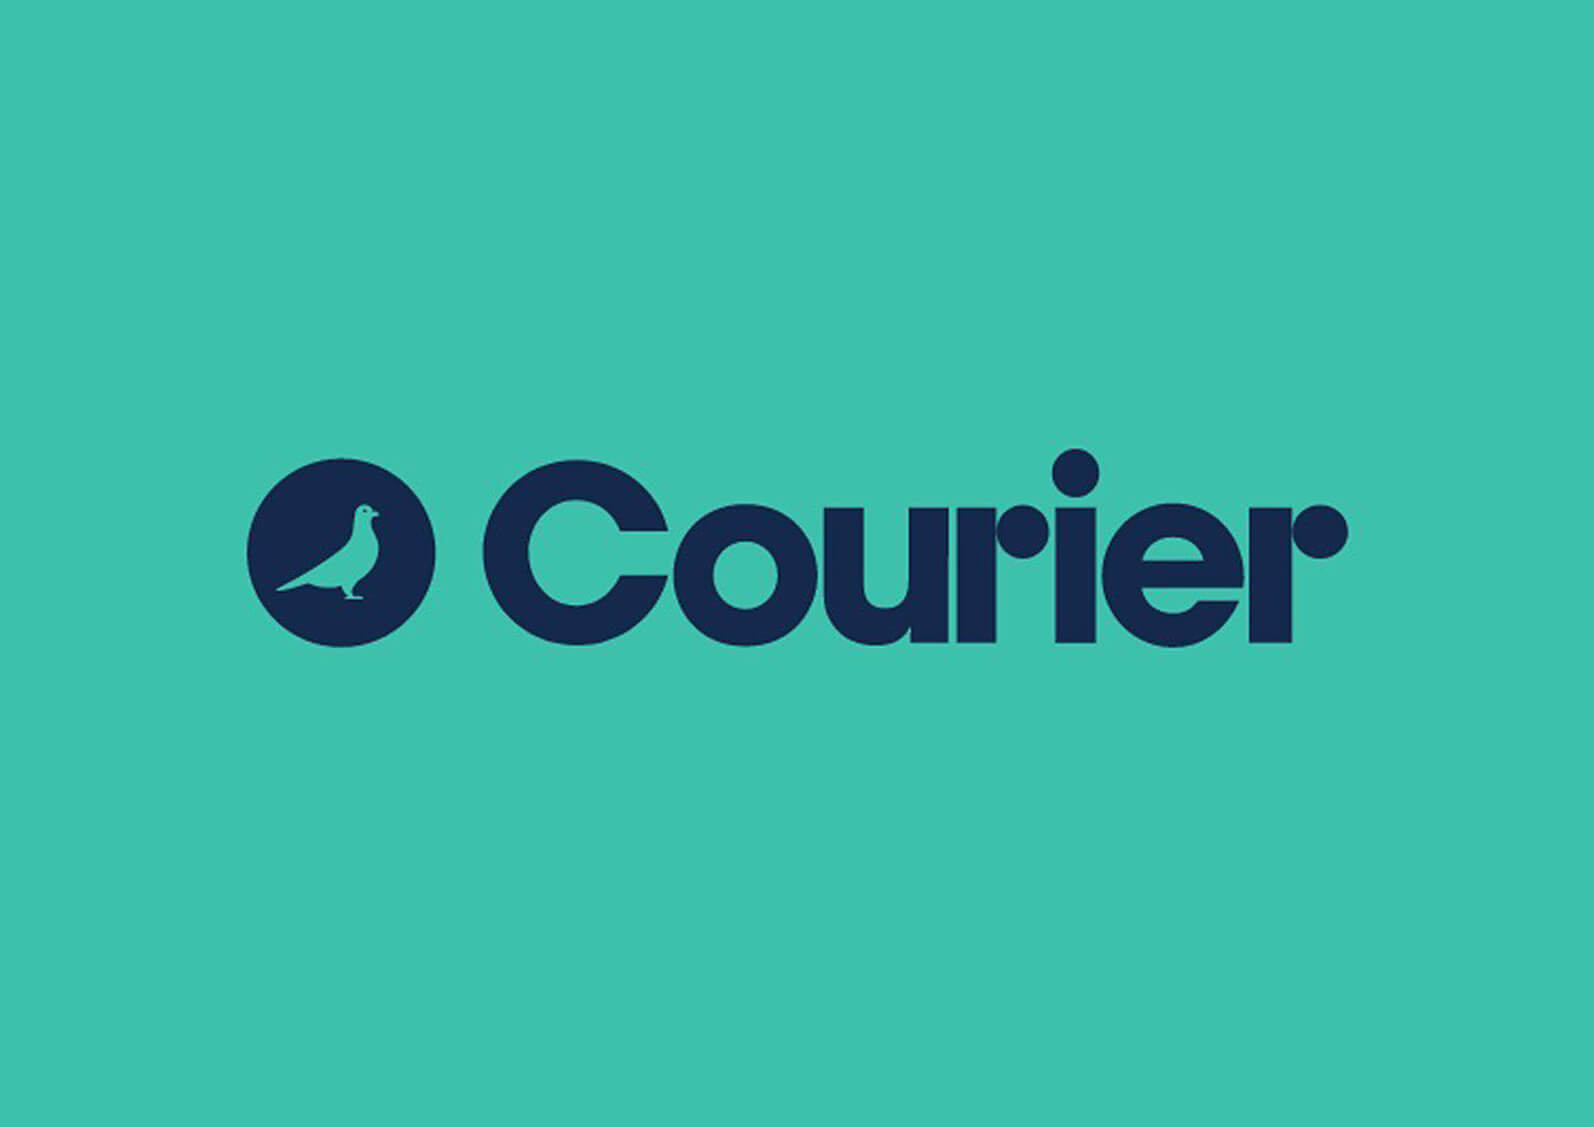 18_Courier